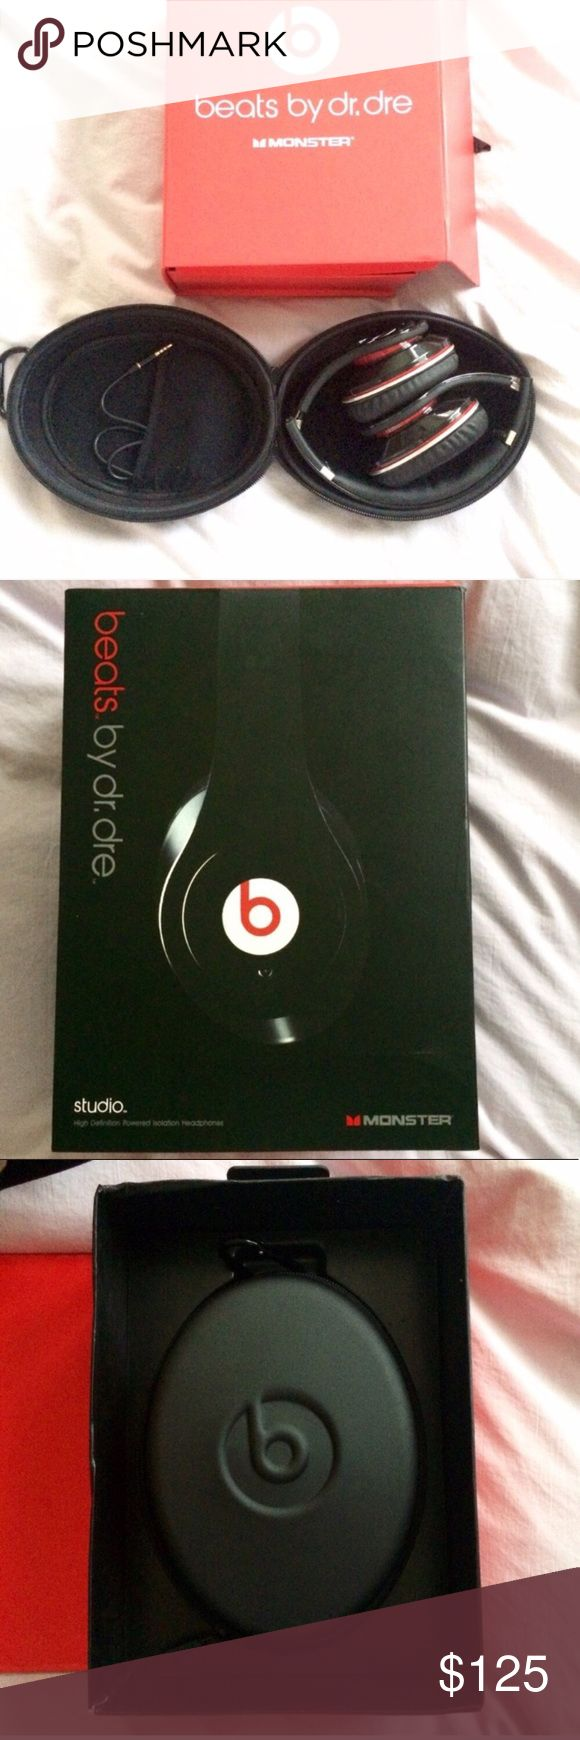 ON SALE 🎧 BEATS Dr Dre Noise Canceling Headphones 🎧 NEW Beats by Dr Dre Studio noise cancellation headphones, in original box with all accessories including zipper case, two wired cord (red, black), adapters, & cleaning cloth. Works with iPhone, black with red accent, foldable for compact storage, scratch resistant gloss finished. Got as a gift. Opened but have another so never used. Great for in plane use! All items in photos included. Small rip on box. NOT REFURBISHED. An original…